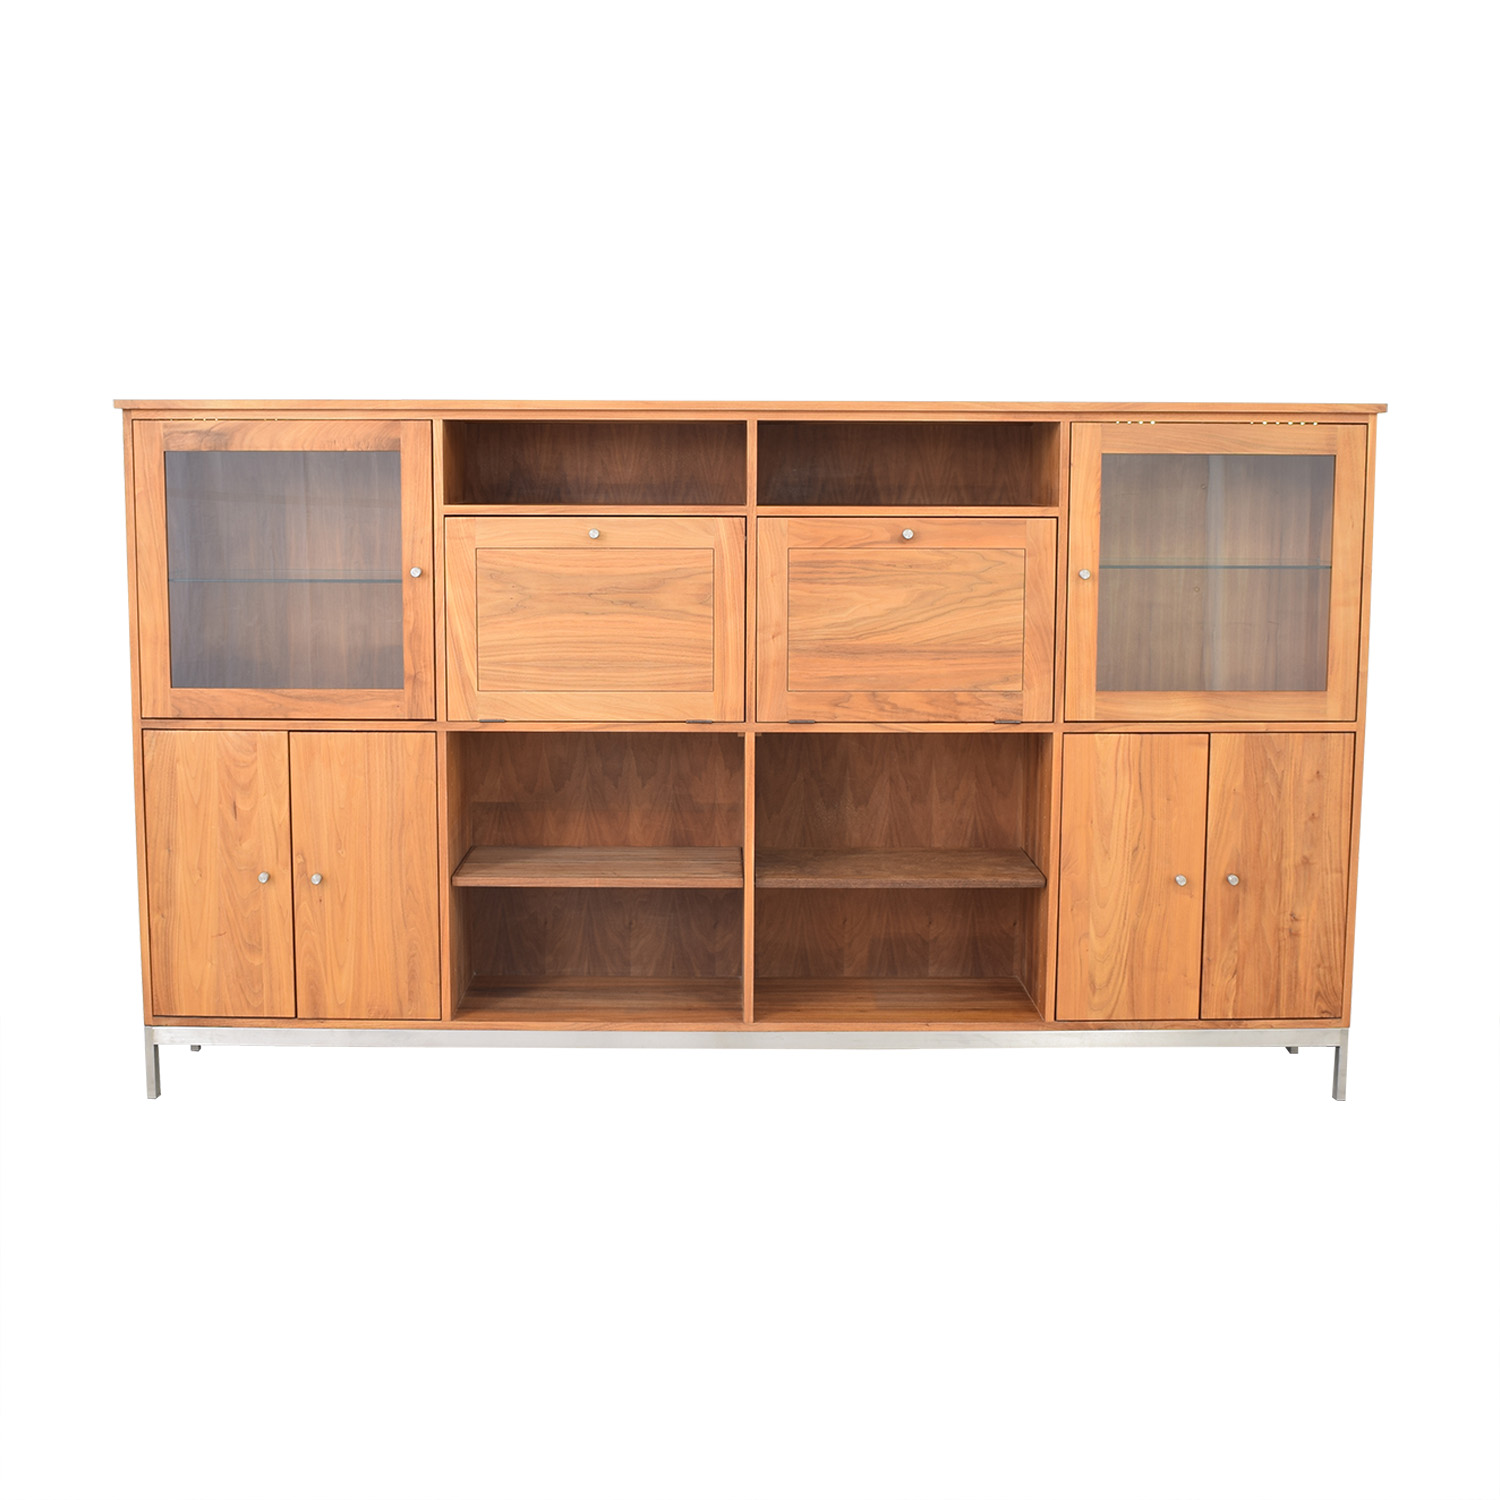 Room & Board Room & Board Media Wall Unit Cabinets & Sideboards